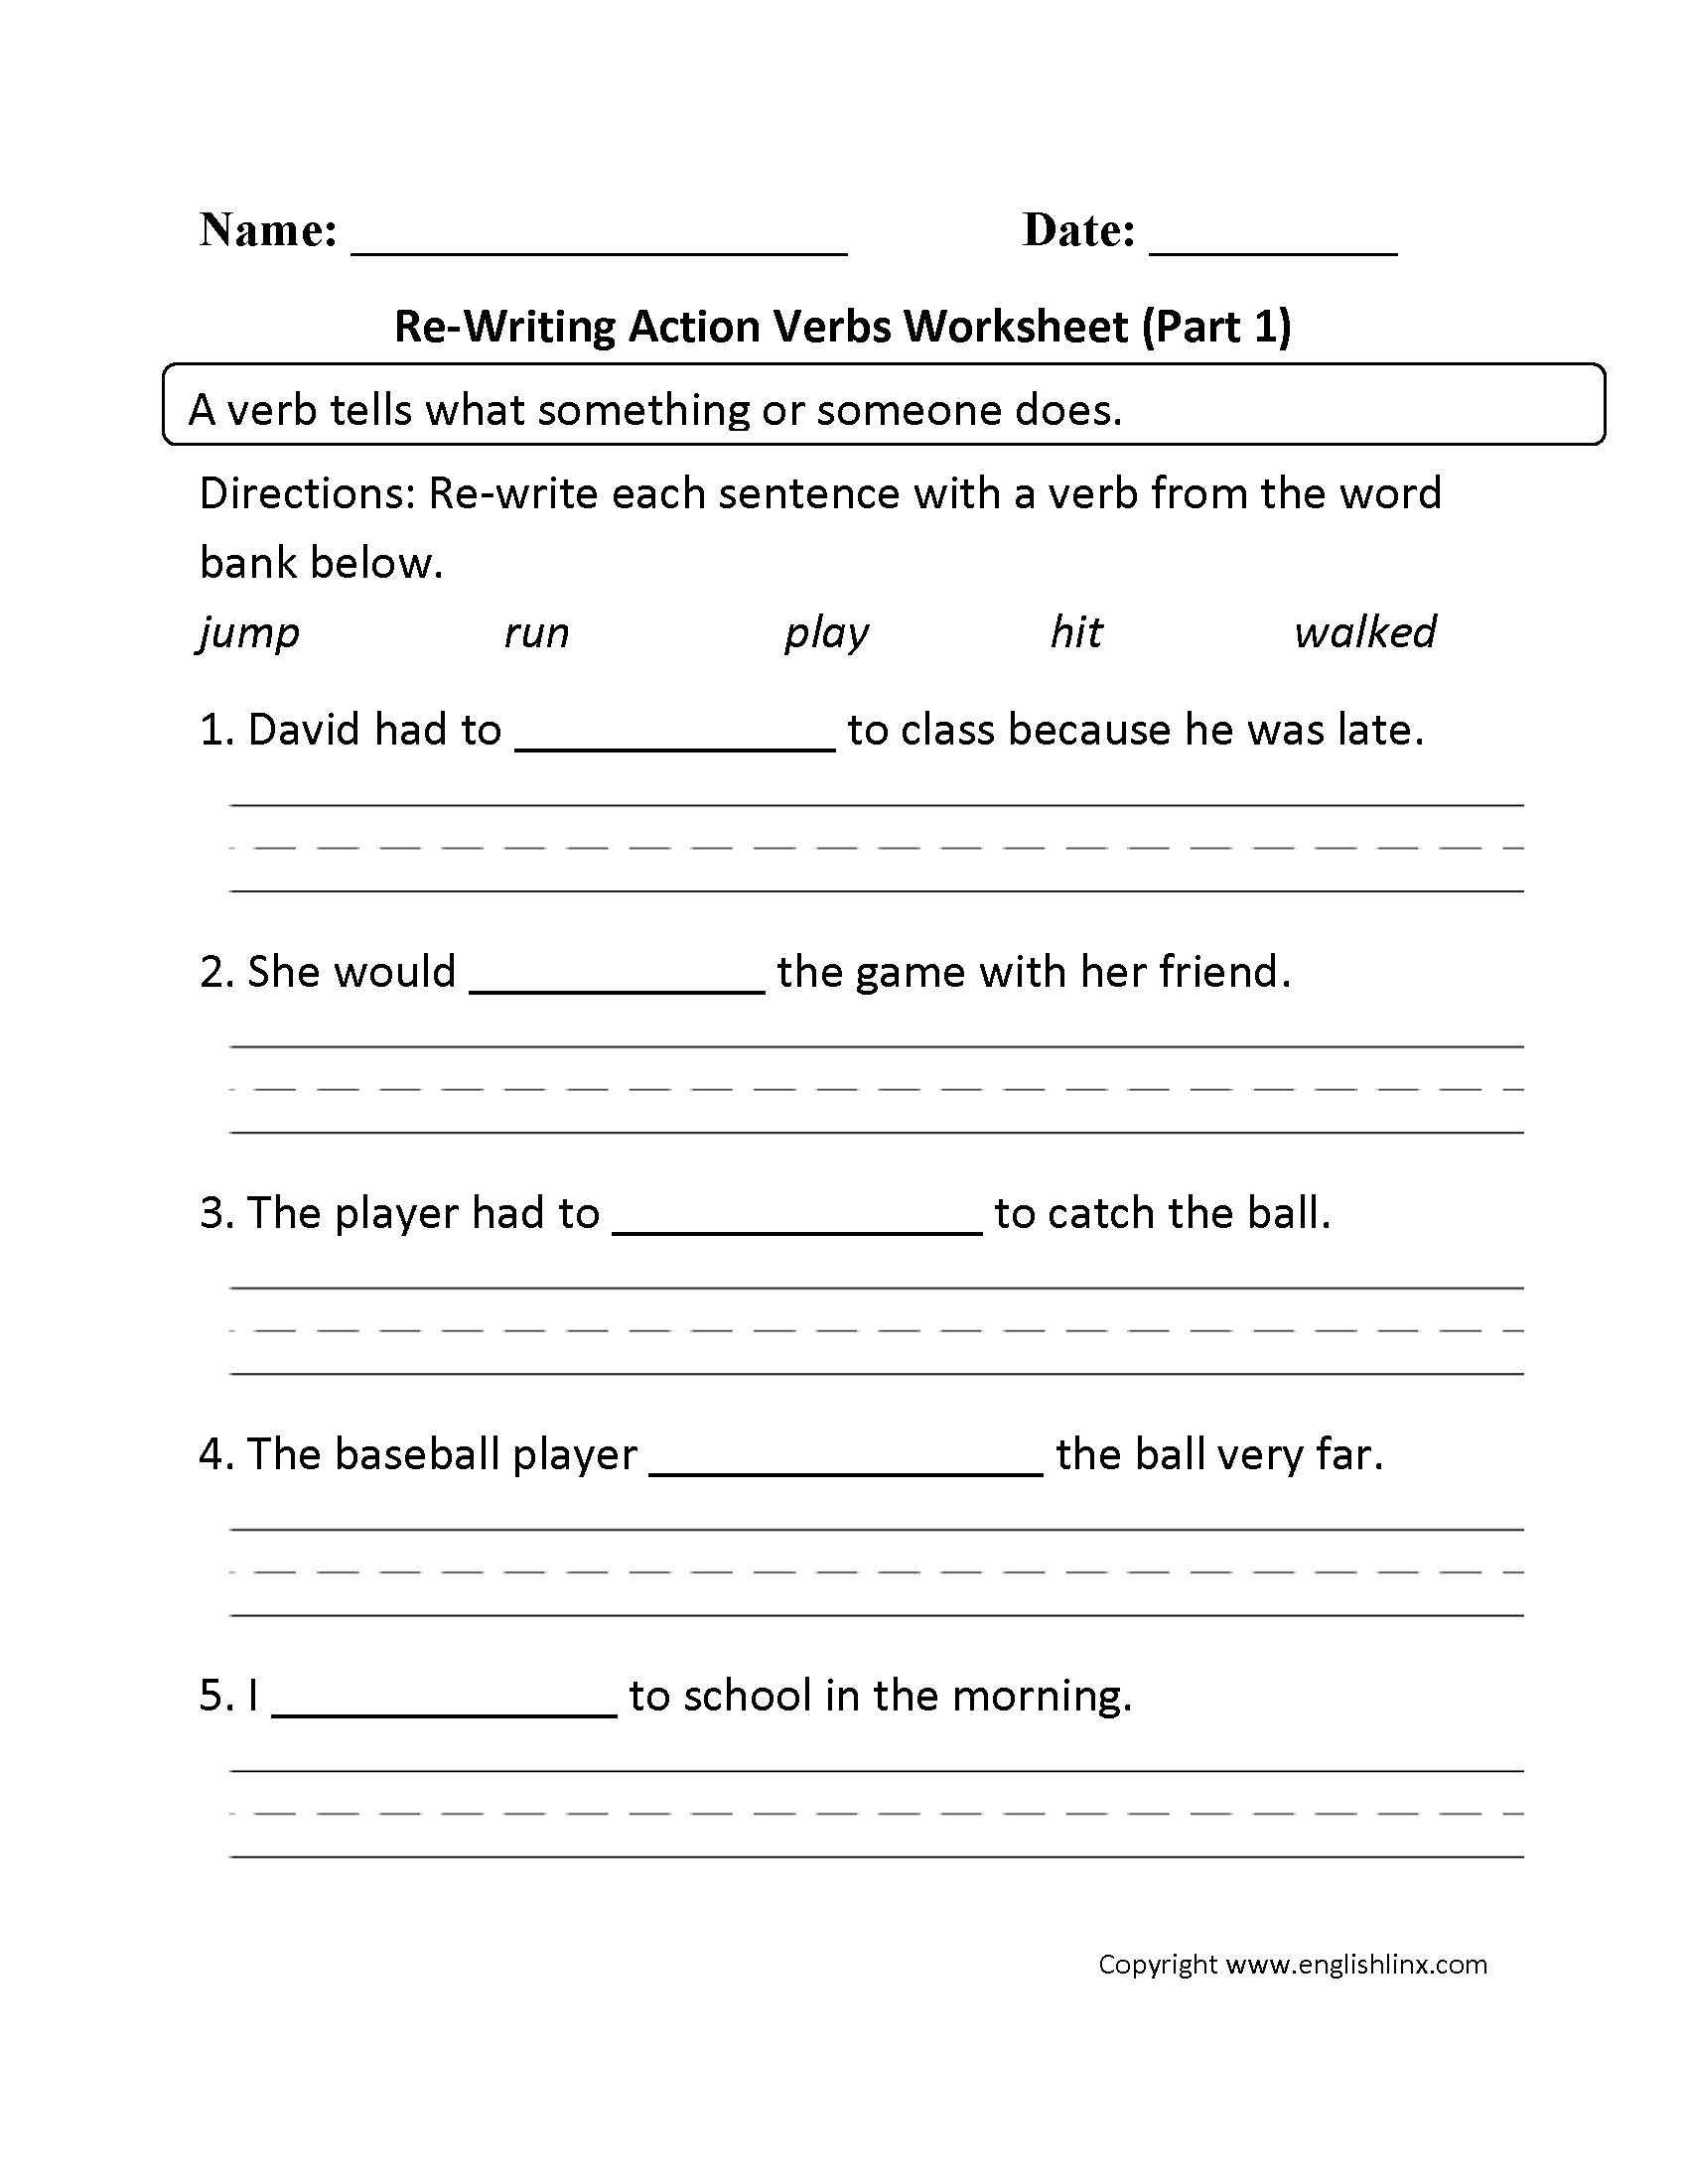 Verbs Worksheets | Action Verbs Worksheets | Free Printable Verb Worksheets